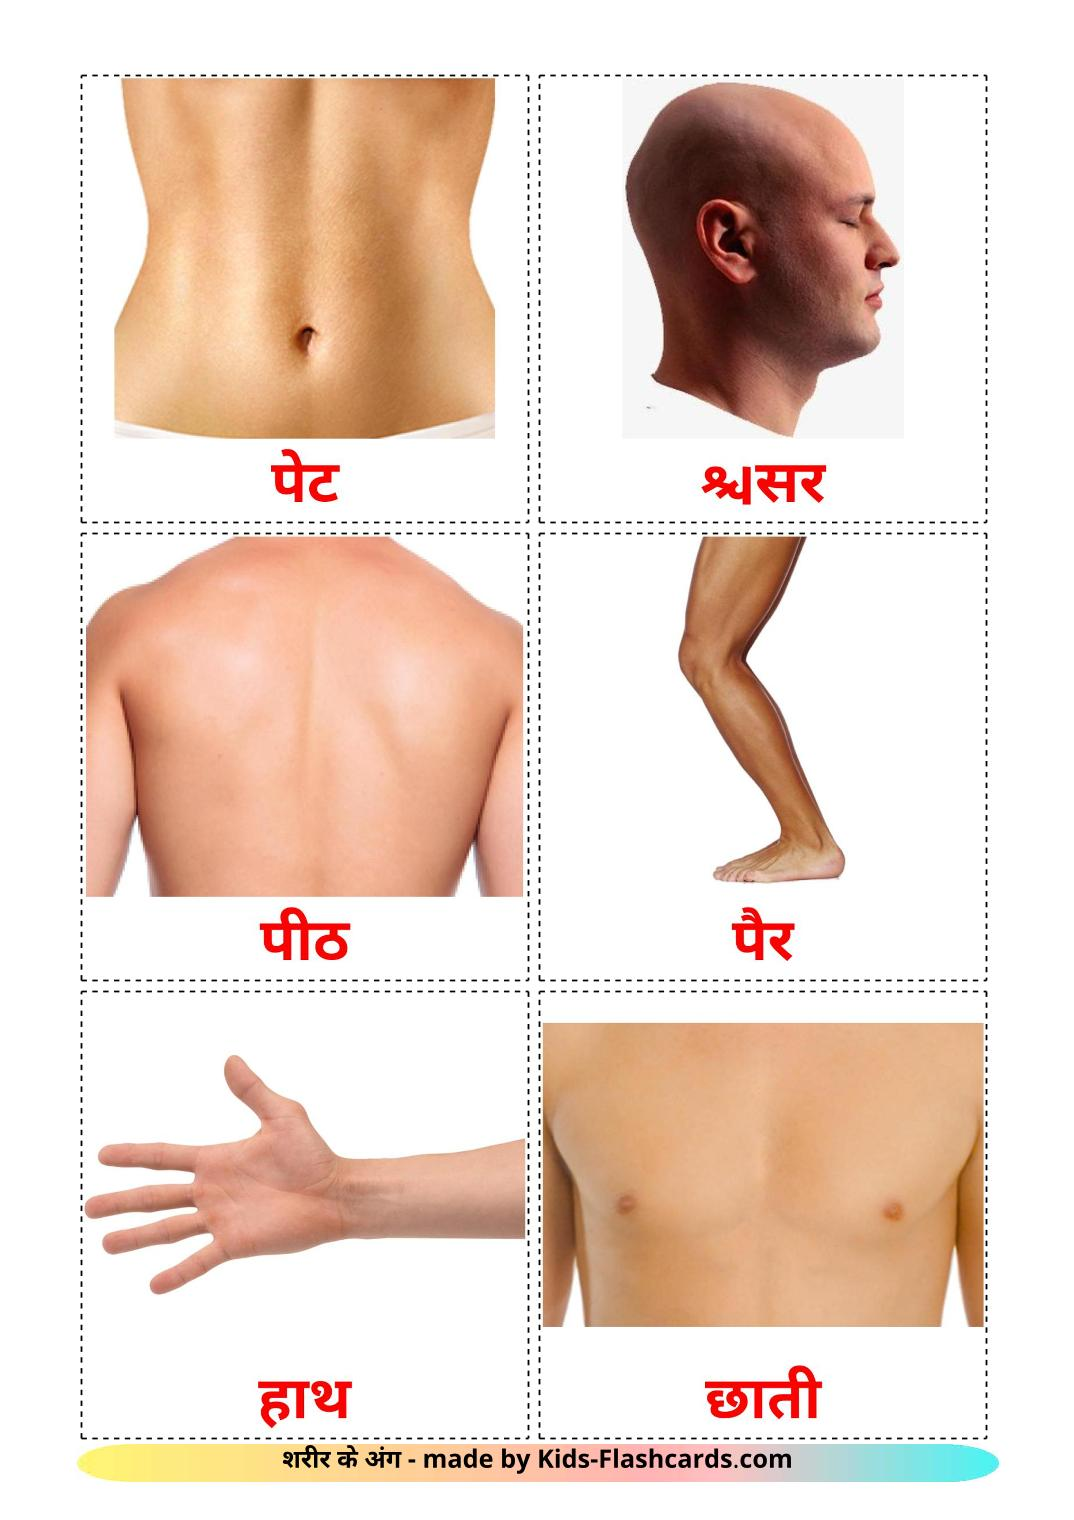 Body Parts - 26 Free Printable devanagari Flashcards